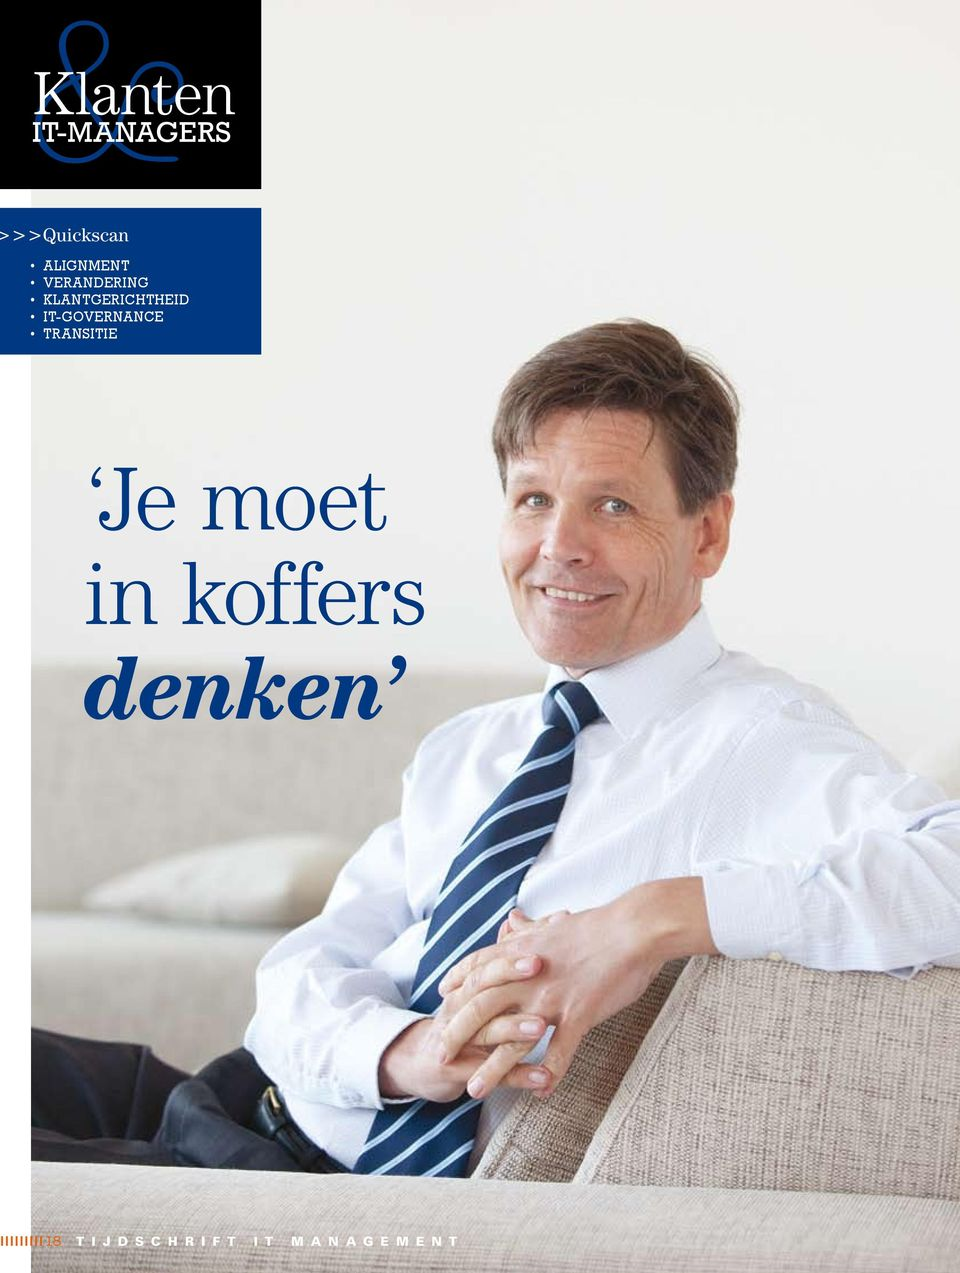 IT-governance Transitie Je moet in koffers